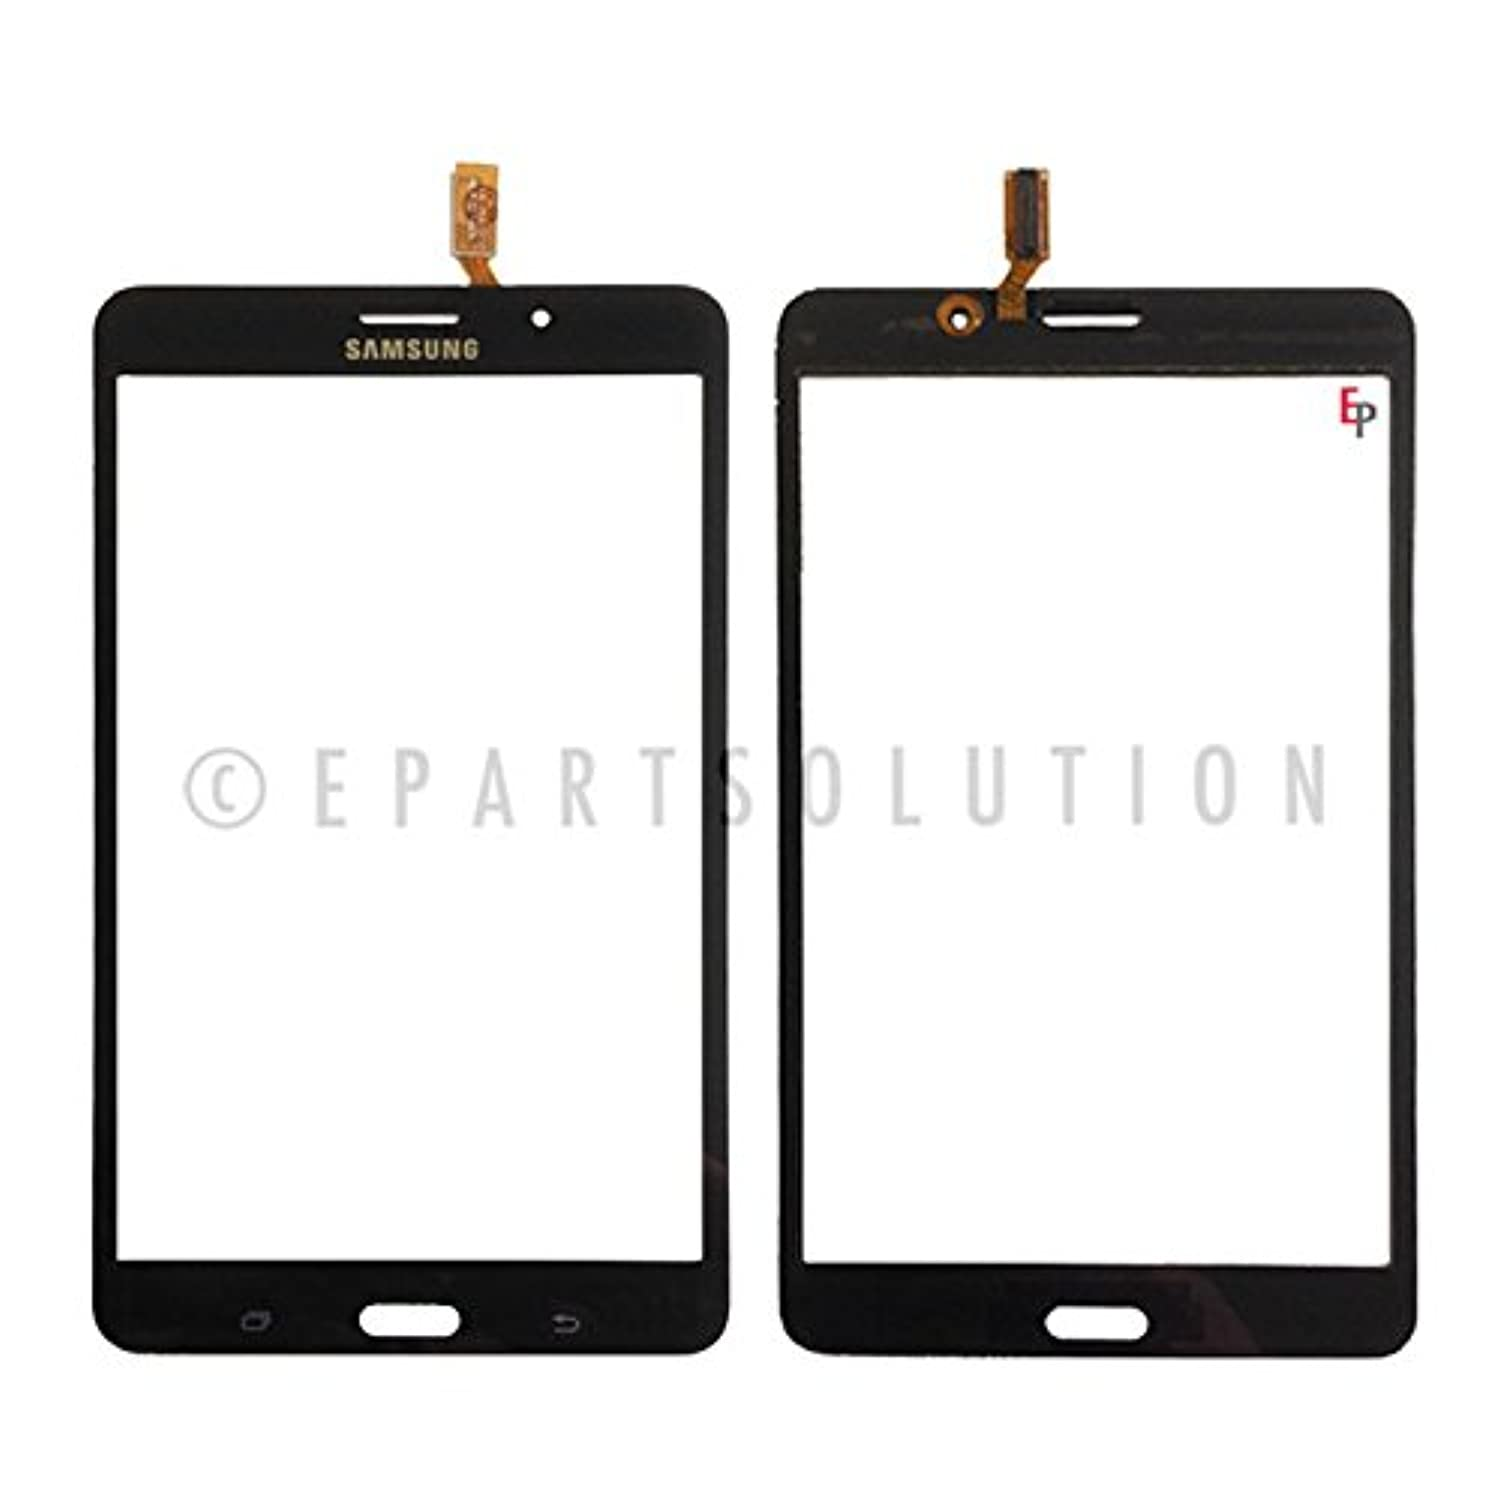 ePartSolution_Black Touch Screen Digitizer Panel Glass Lens for Samsung Galaxy Tab 4 SM-T231 7.0